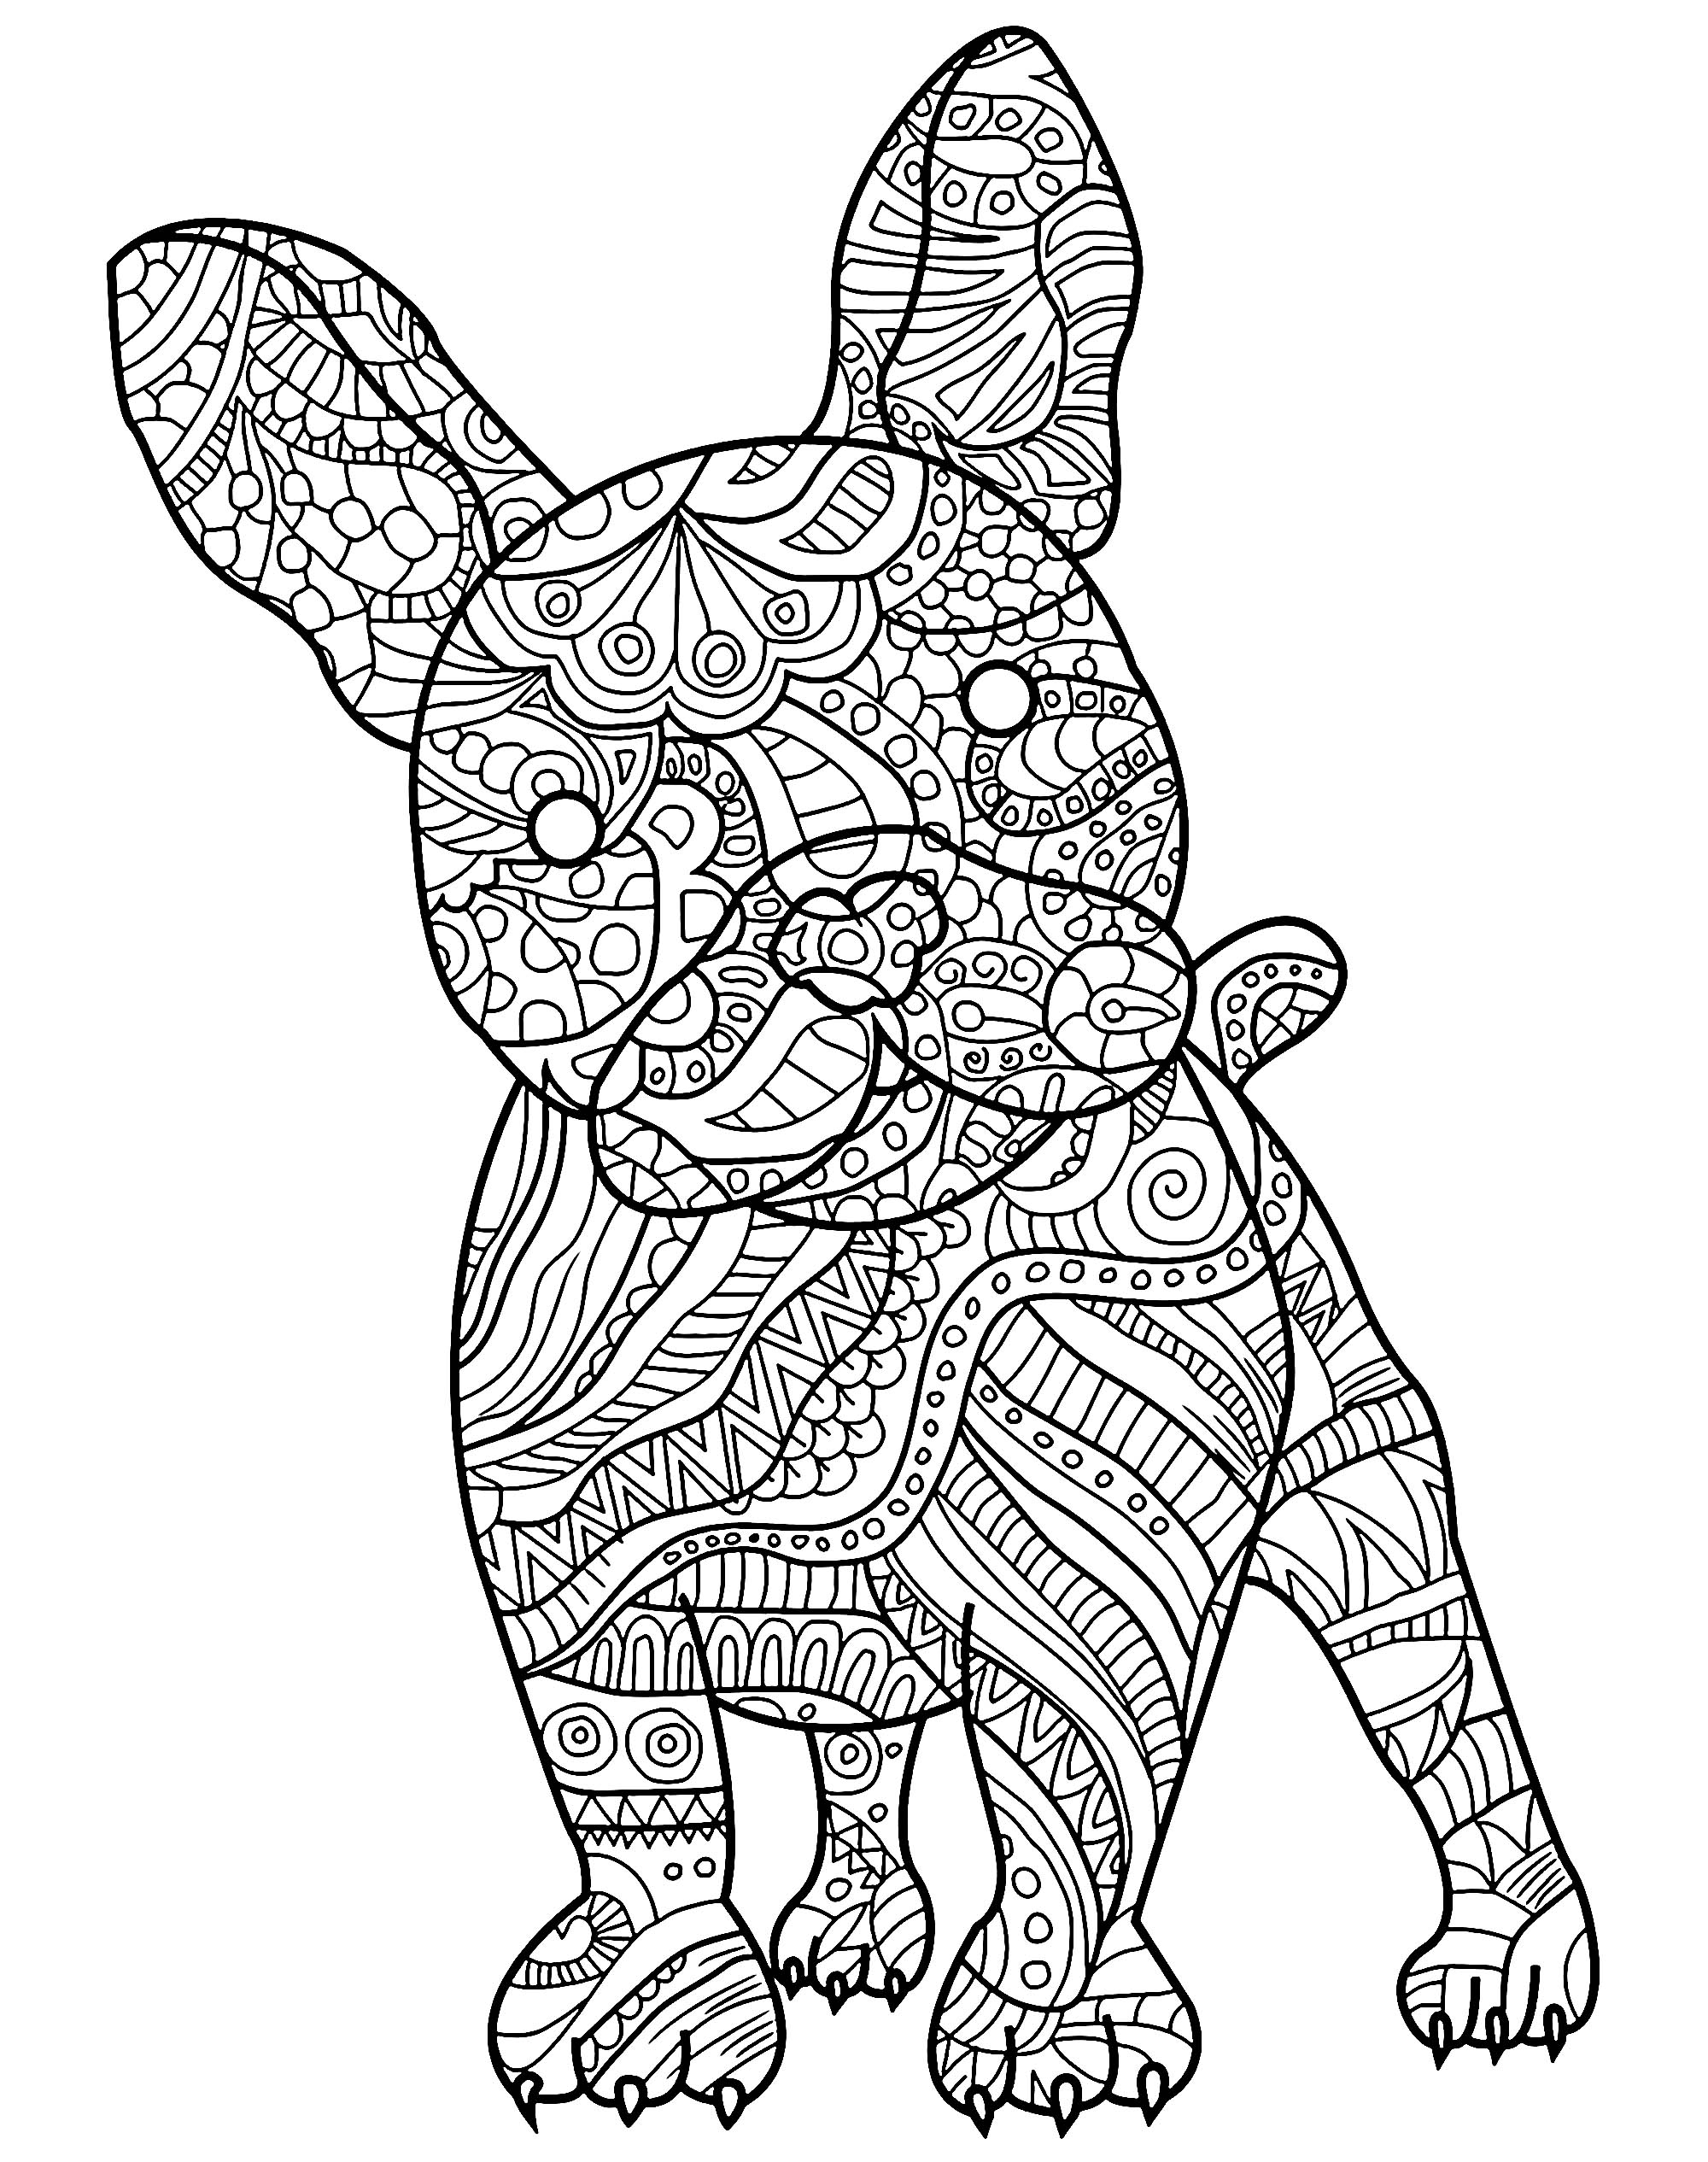 coloring dog for kids dog coloring pages for kids print them online for free for dog coloring kids